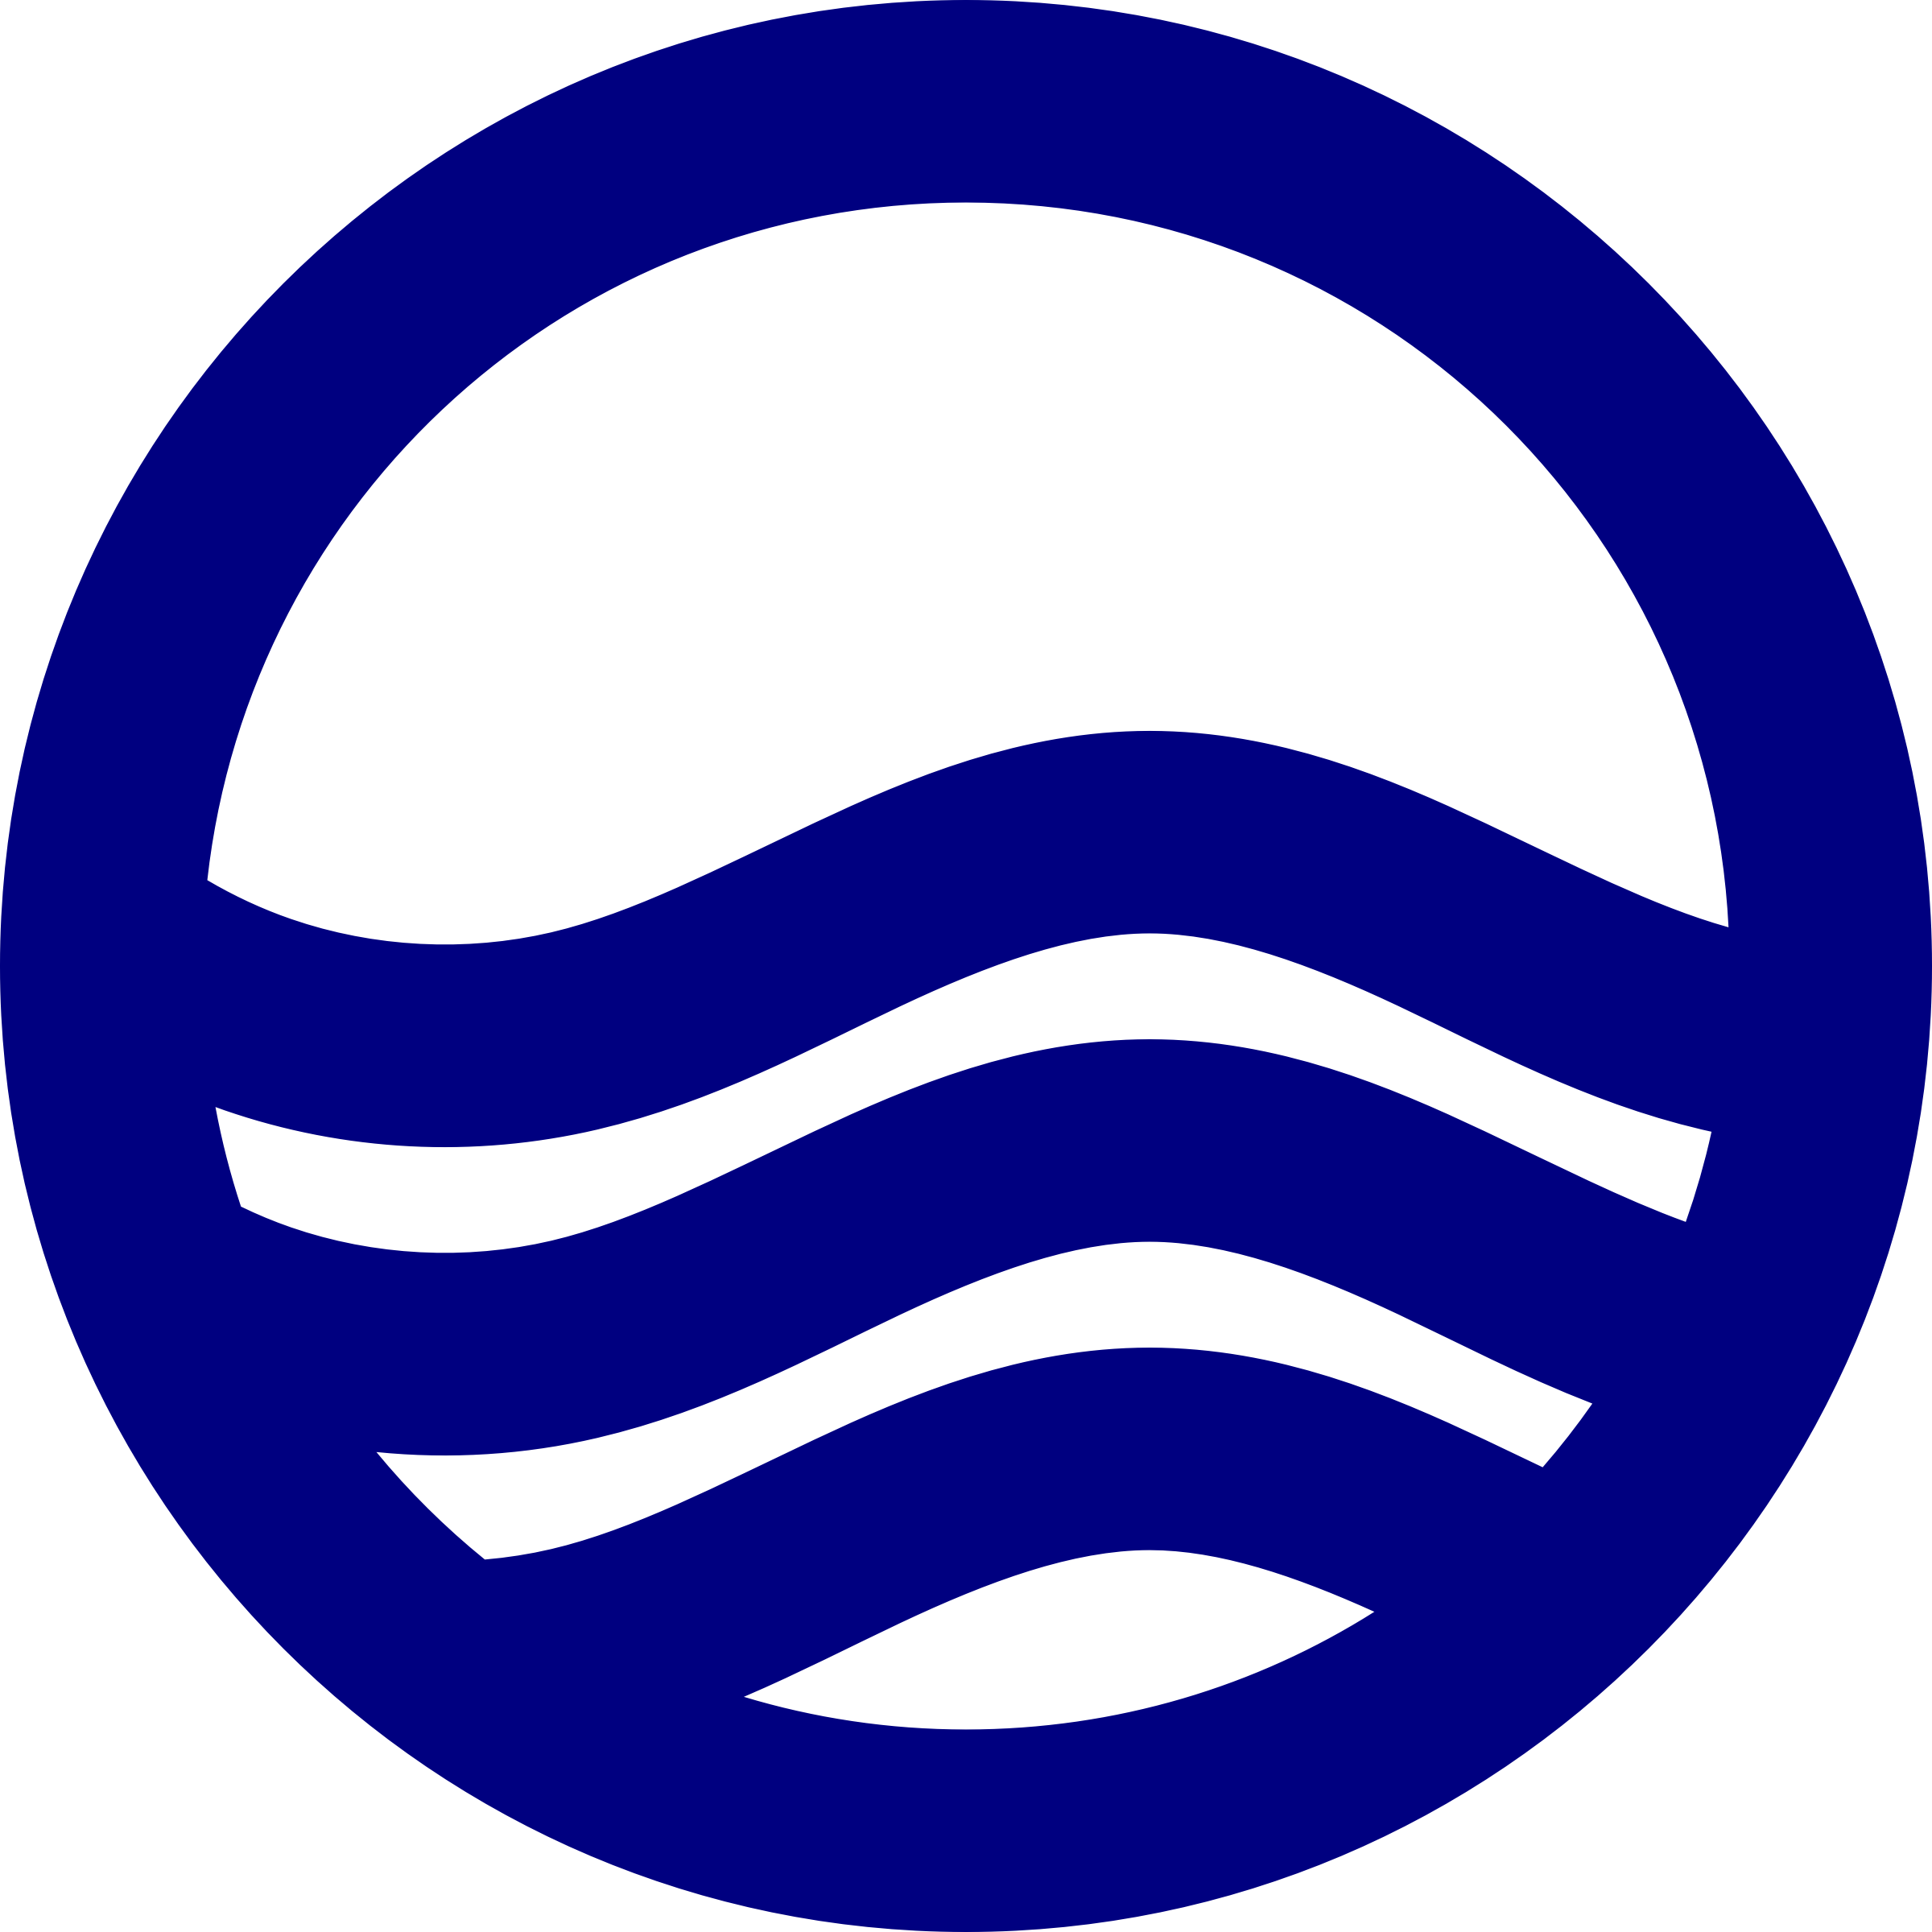 Wave icon. Waves clipart symbol